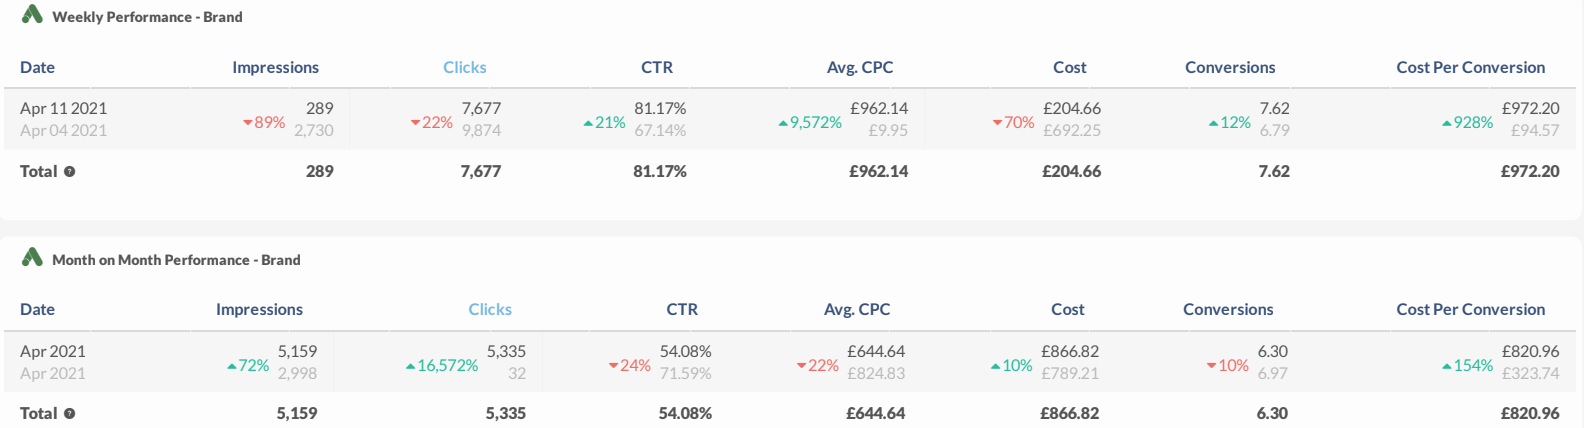 Weekly Performance by Brand (Impressions, Clicks, CTR, Avg. CPC, Cost, Conversions, CPC)